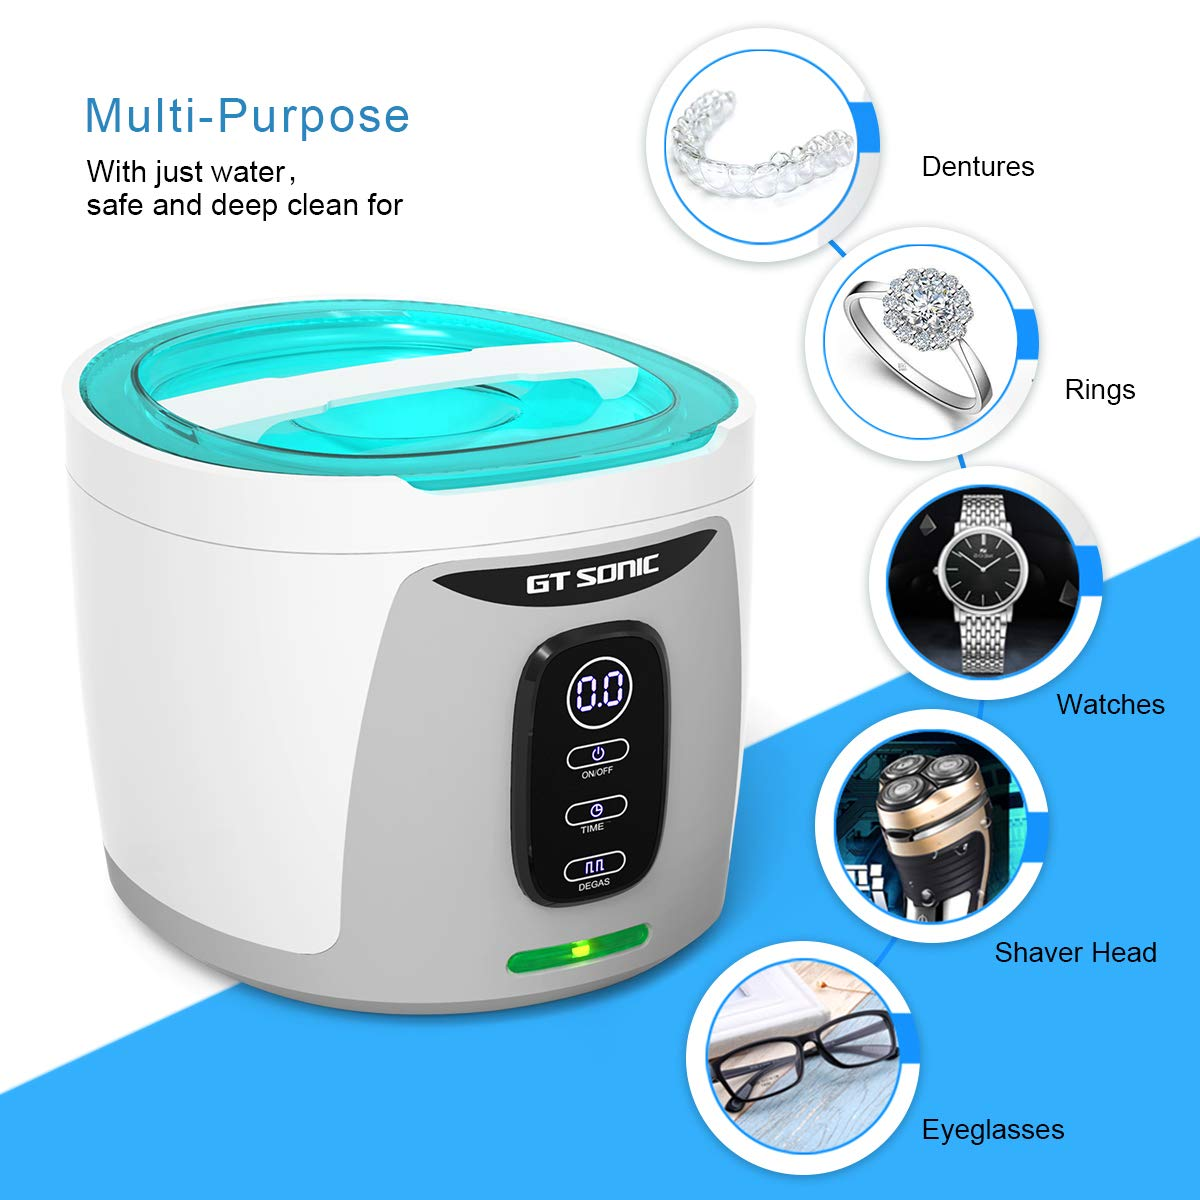 GTSONIC Ultrasonic Cleaner Jewelry Glasses Dentures Professional Detachable Cleaning Machine, 4 Timer Cycles Auto-Off, 26 OZ, 35 W by GTSONIC (Image #5)